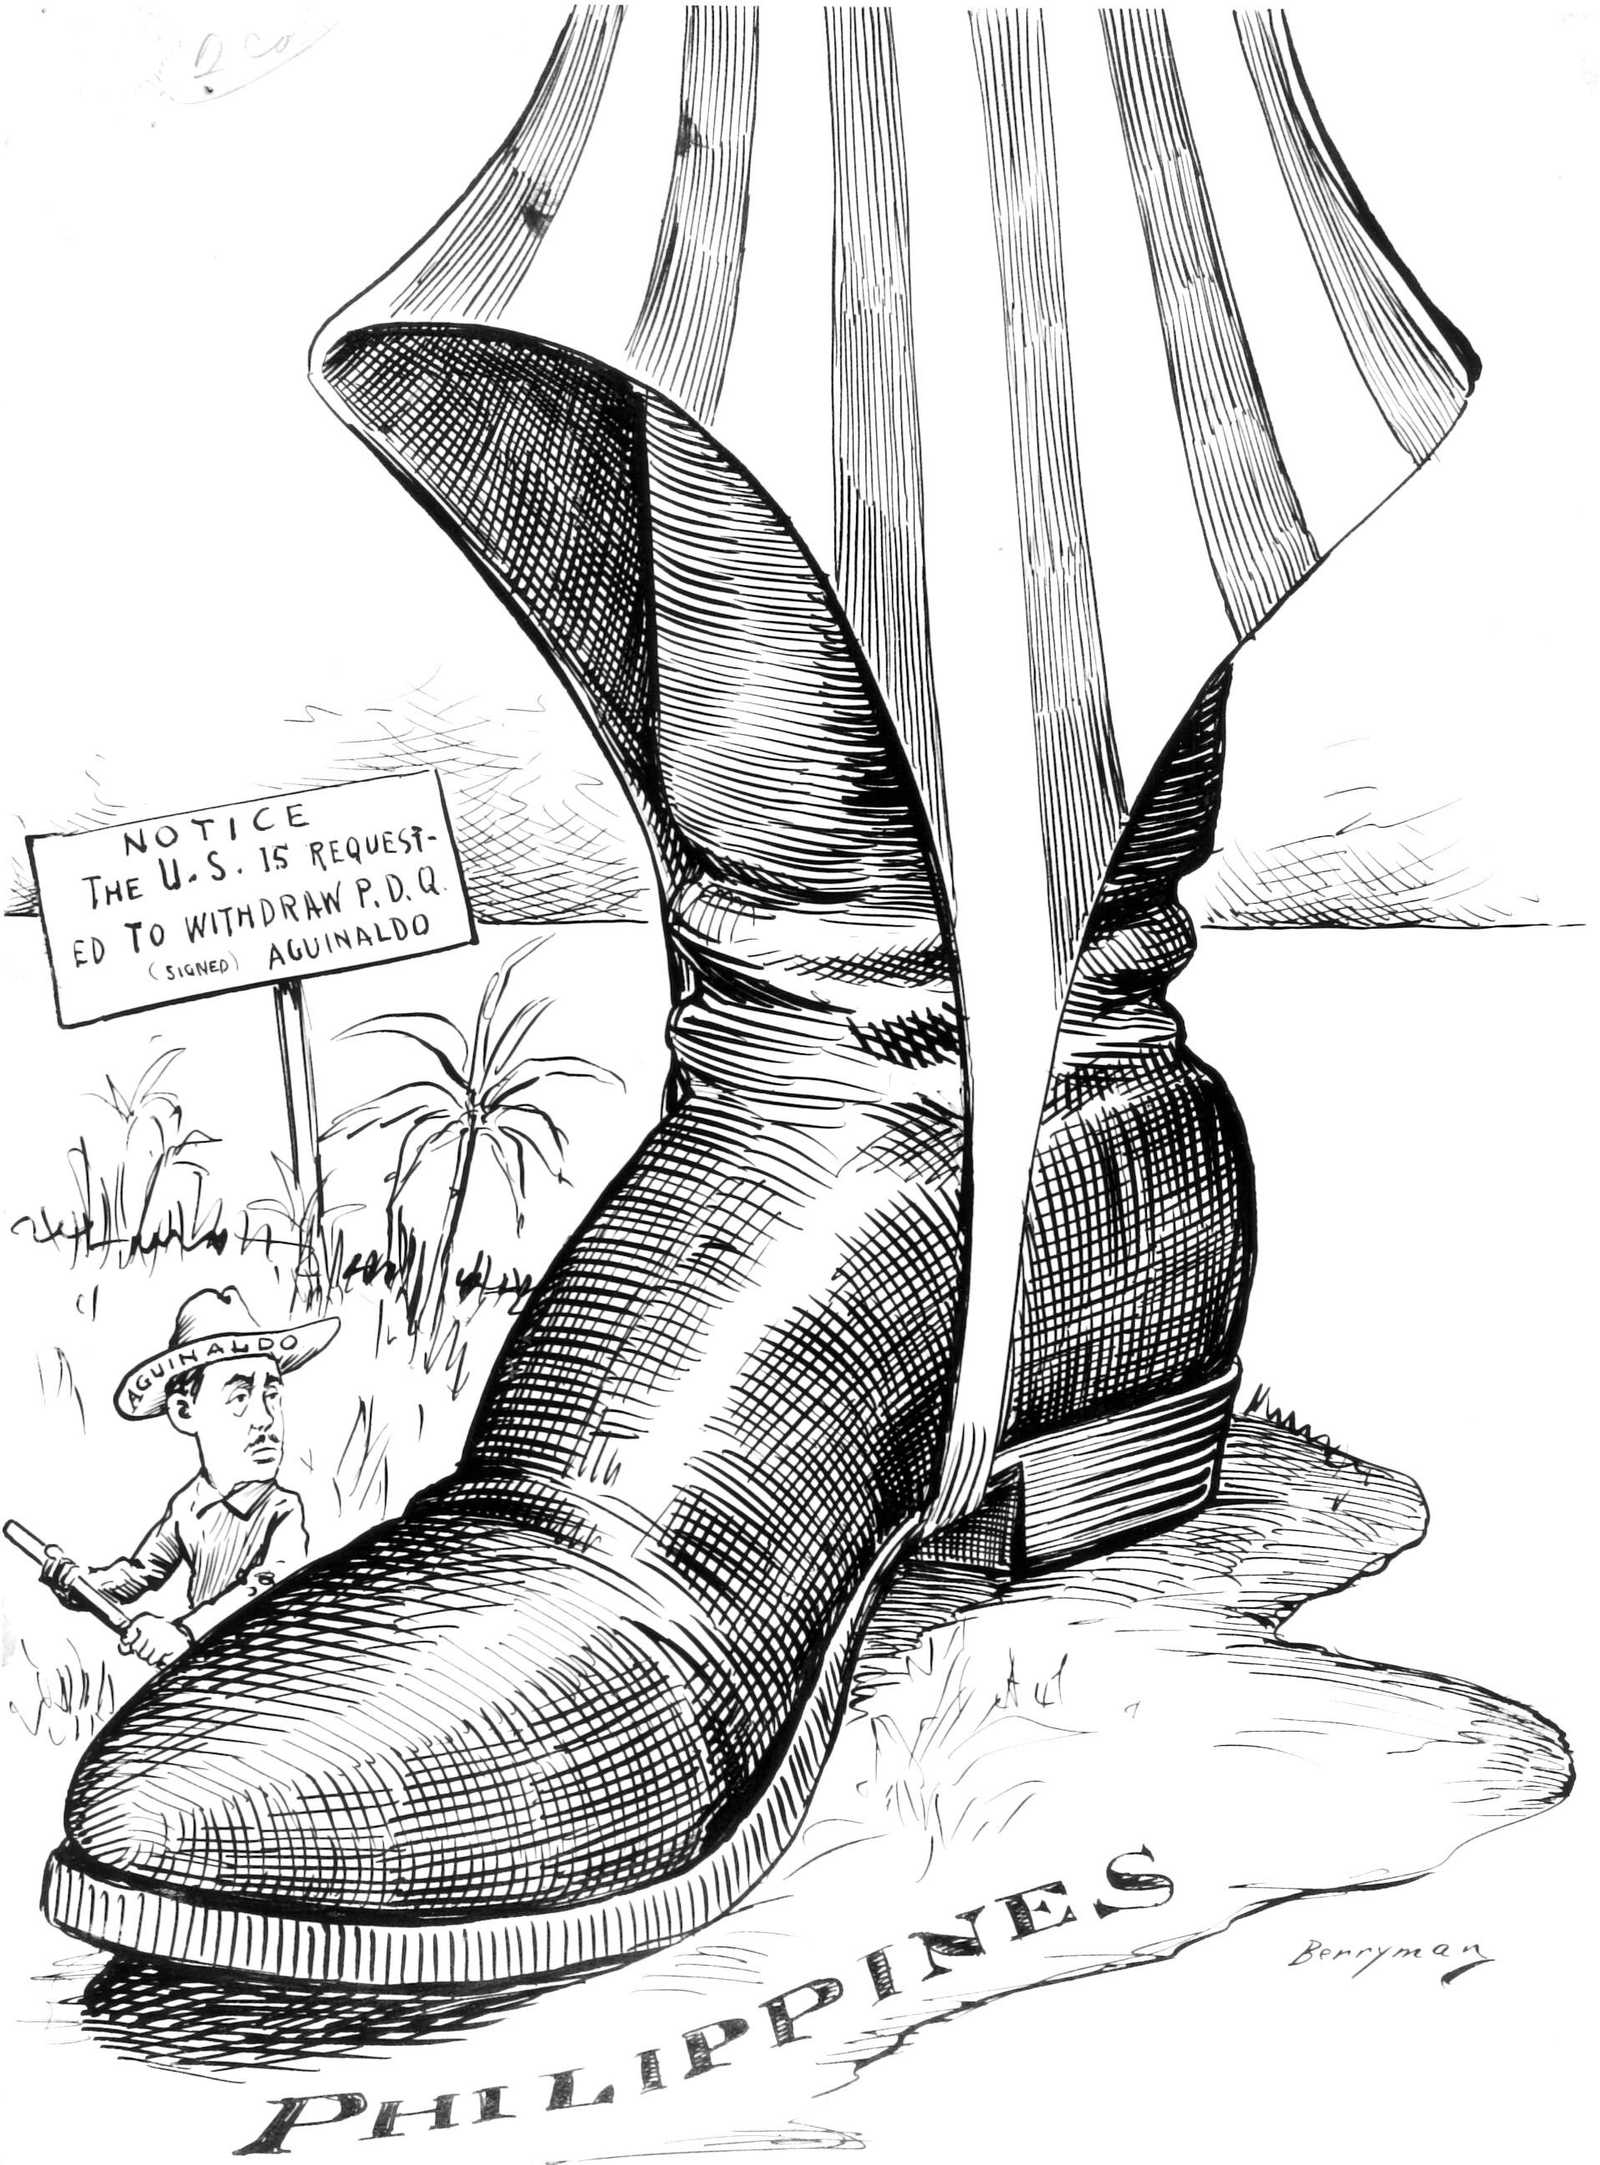 Political cartoon depicting Uncle Sam's boot stomping on the Philippines